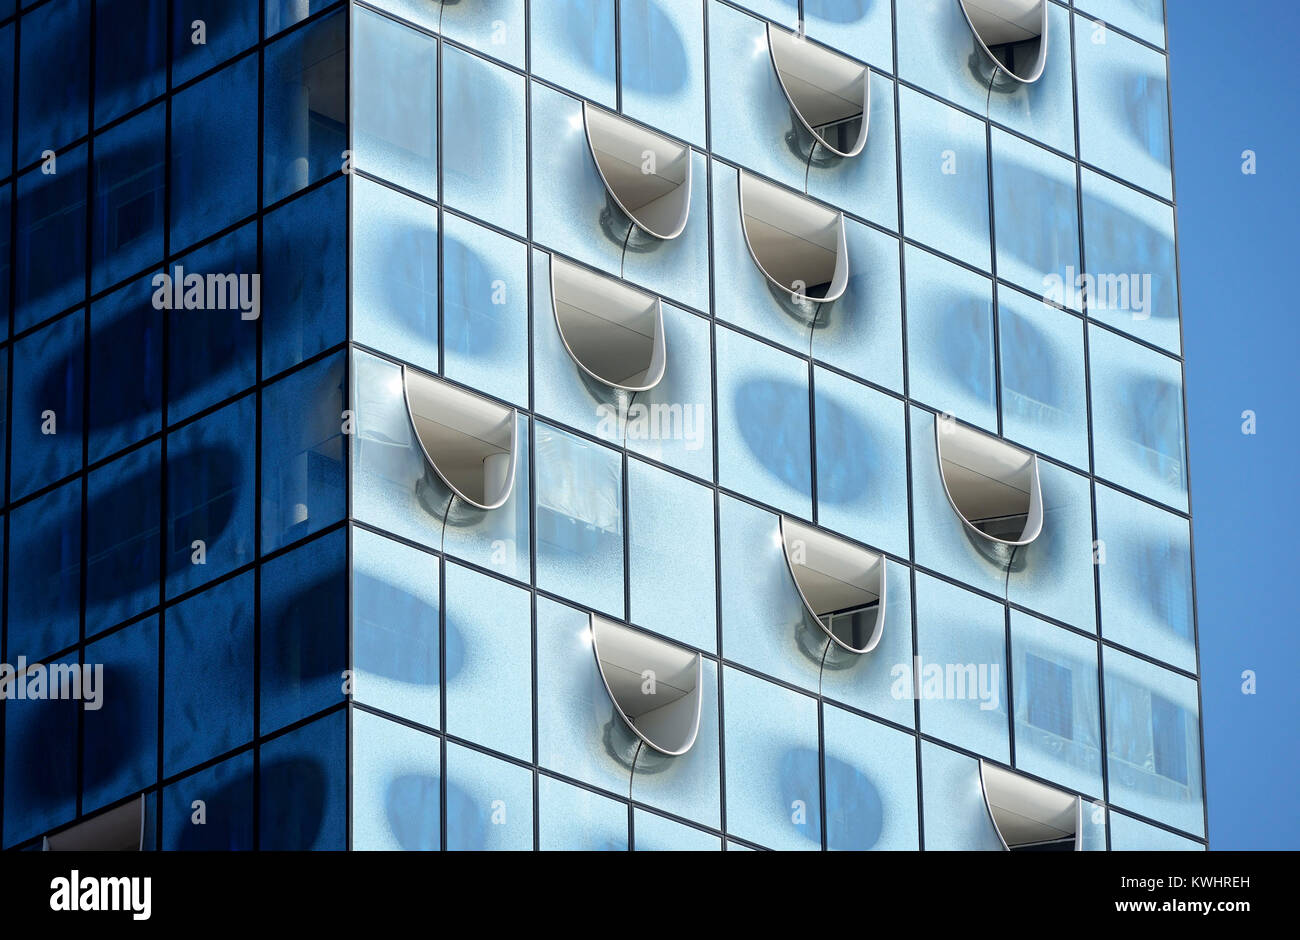 Facade of the Elbphilharmonie in Hamburg, Germany, Europe, Fassade der Elbphilharmonie in Hamburg, Deutschland, - Stock Image